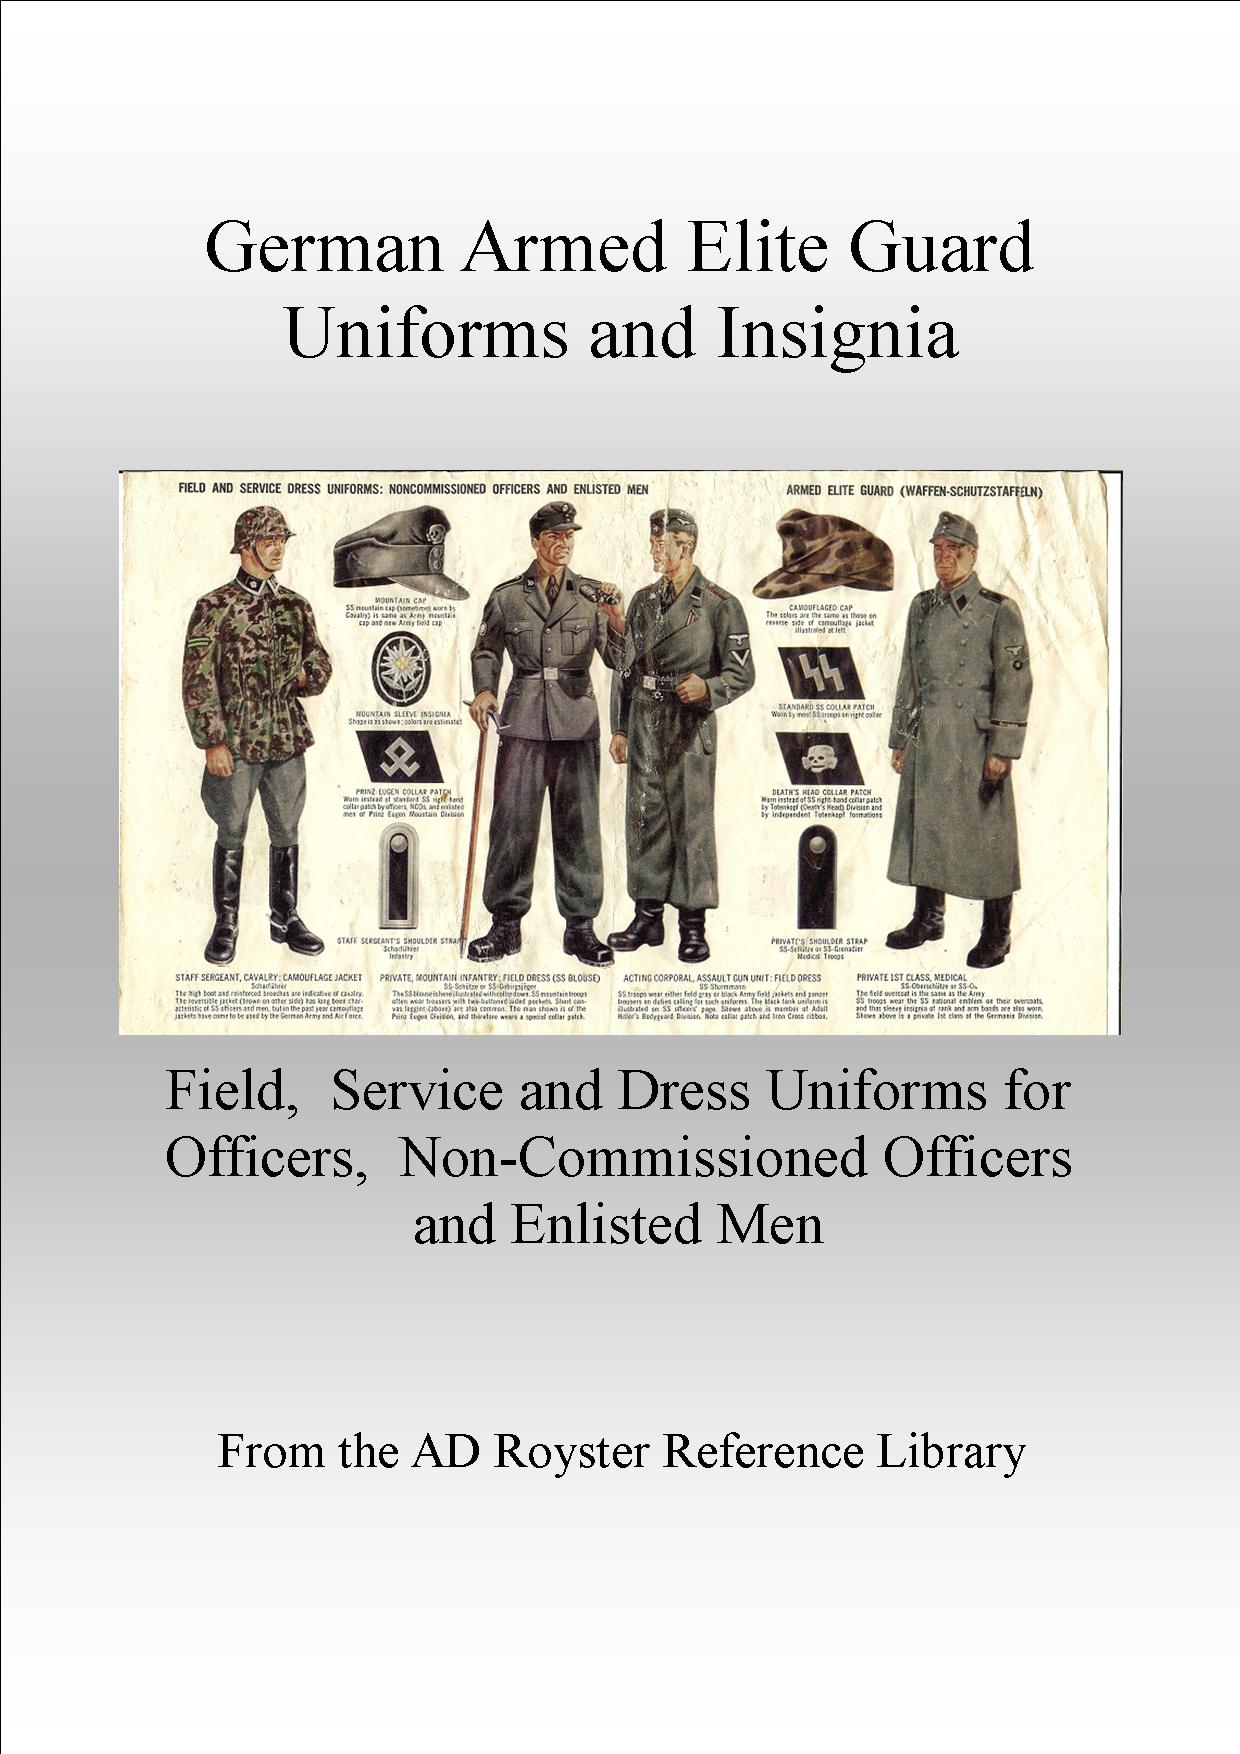 SS Uniforms Cover 1